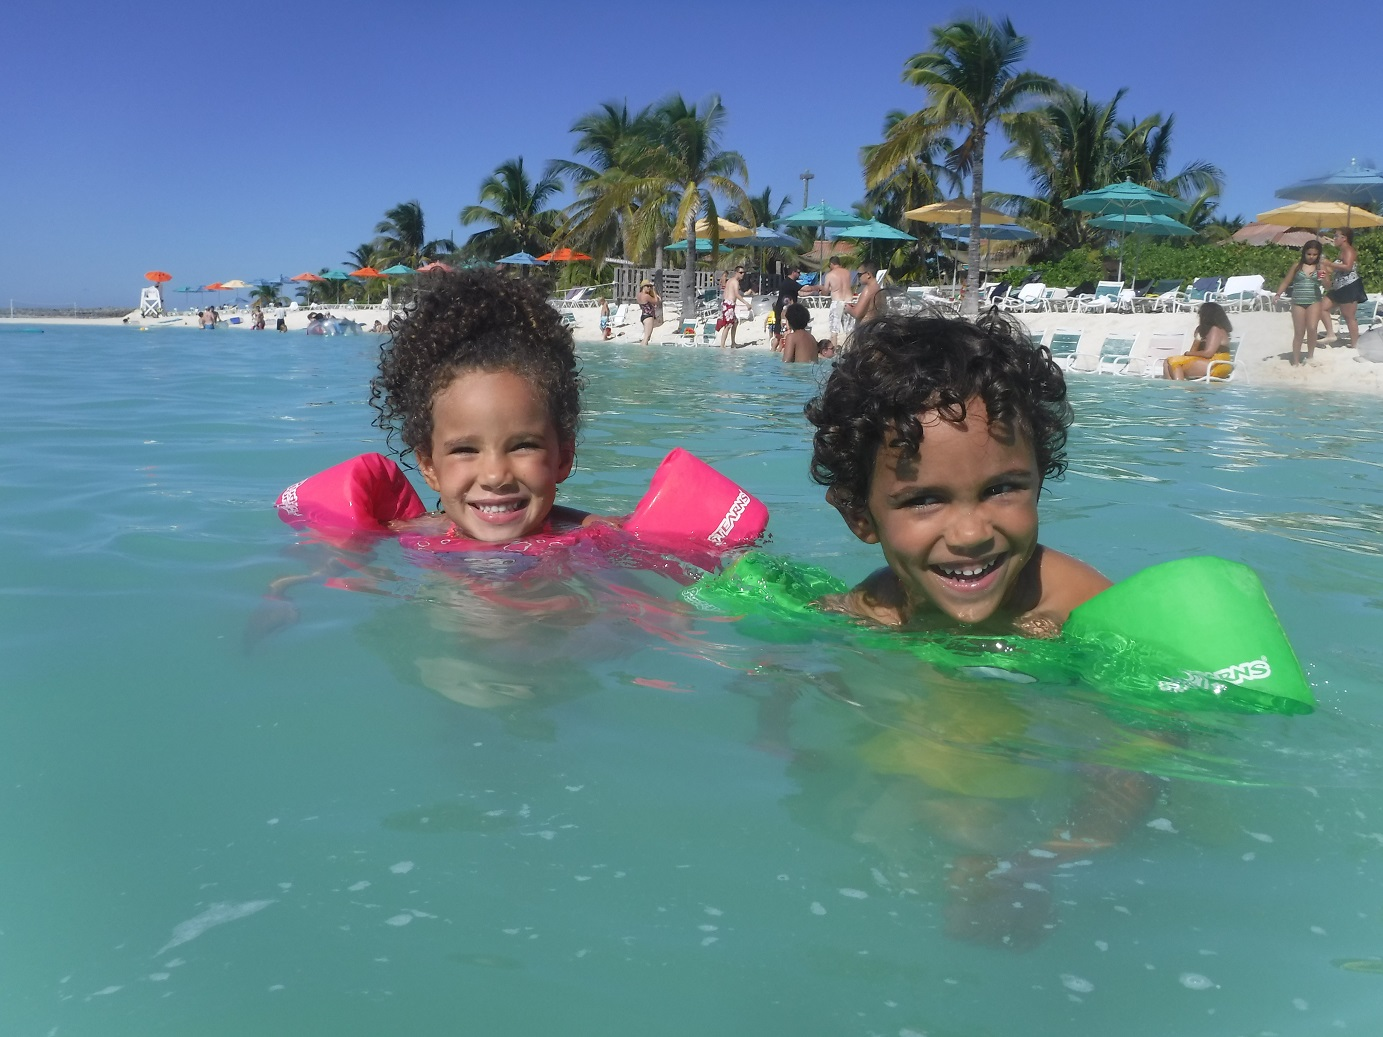 Disney Dream swimming after the best Caribbean cruises.